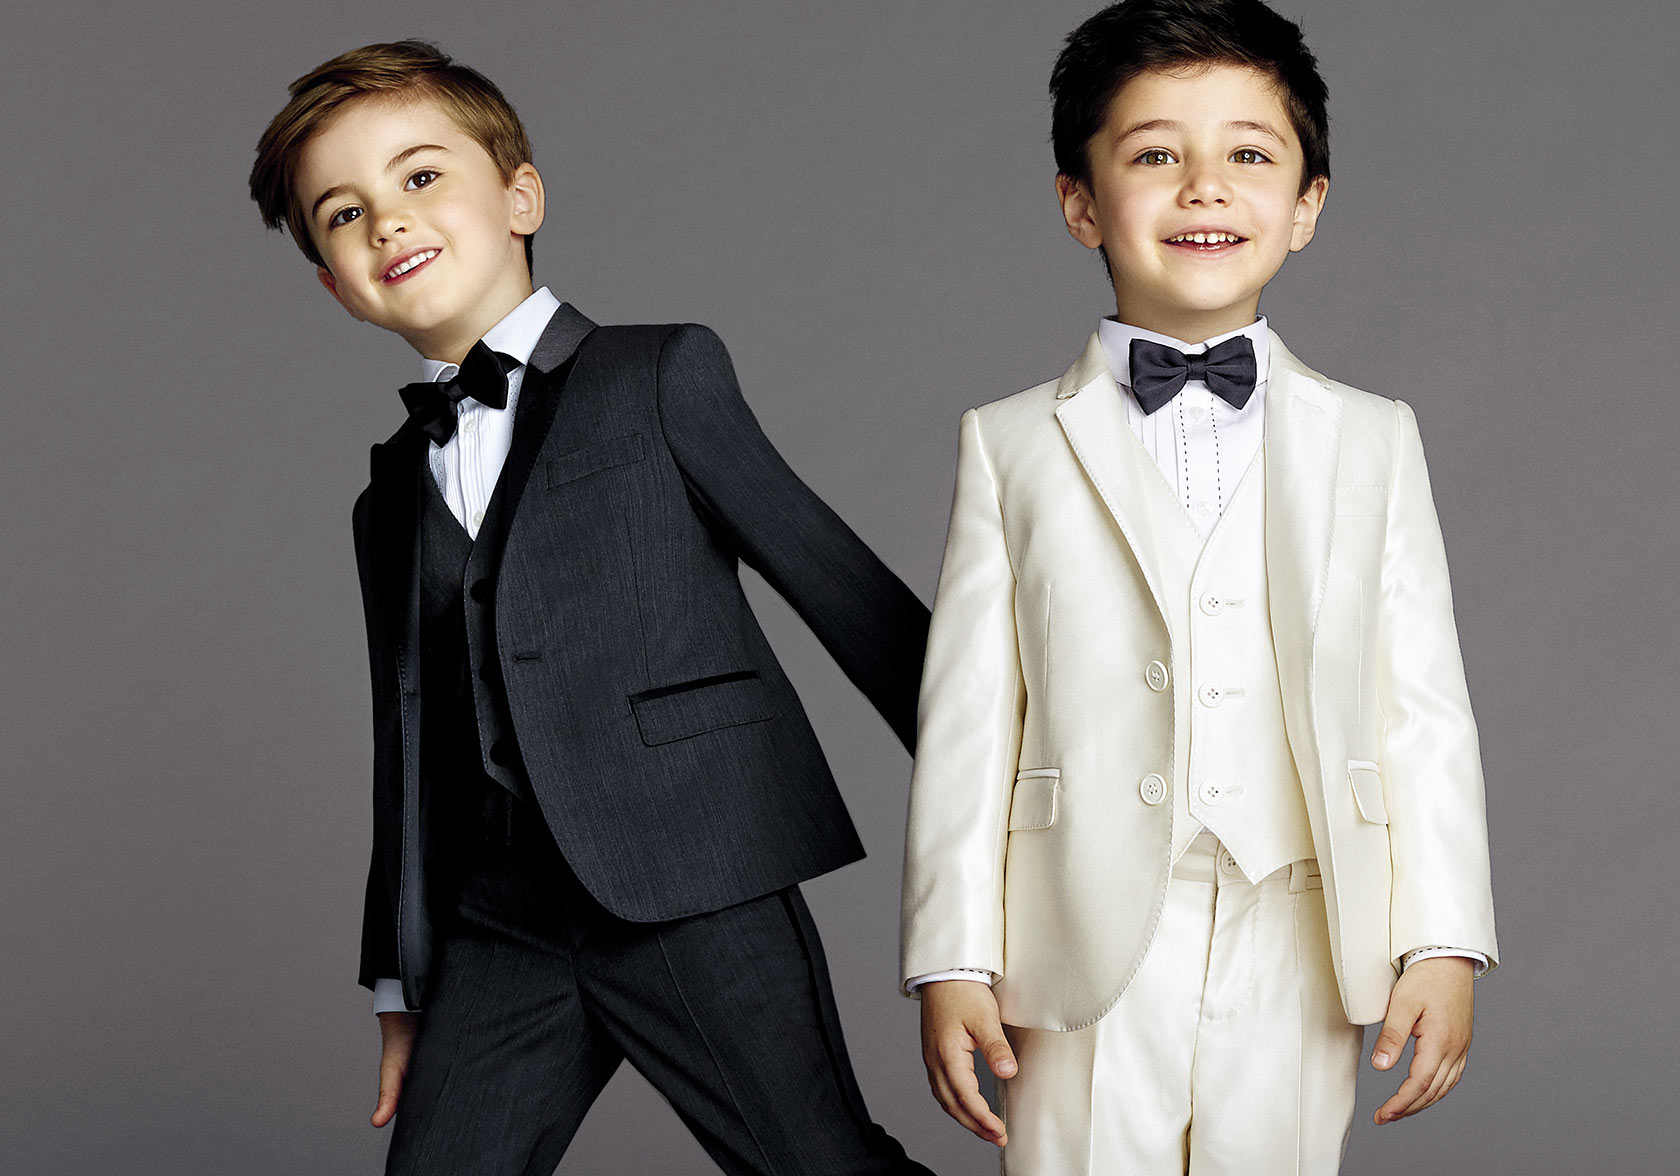 dolce-and-gabbana-summer-2015-child-collection-64-zoom.jpg